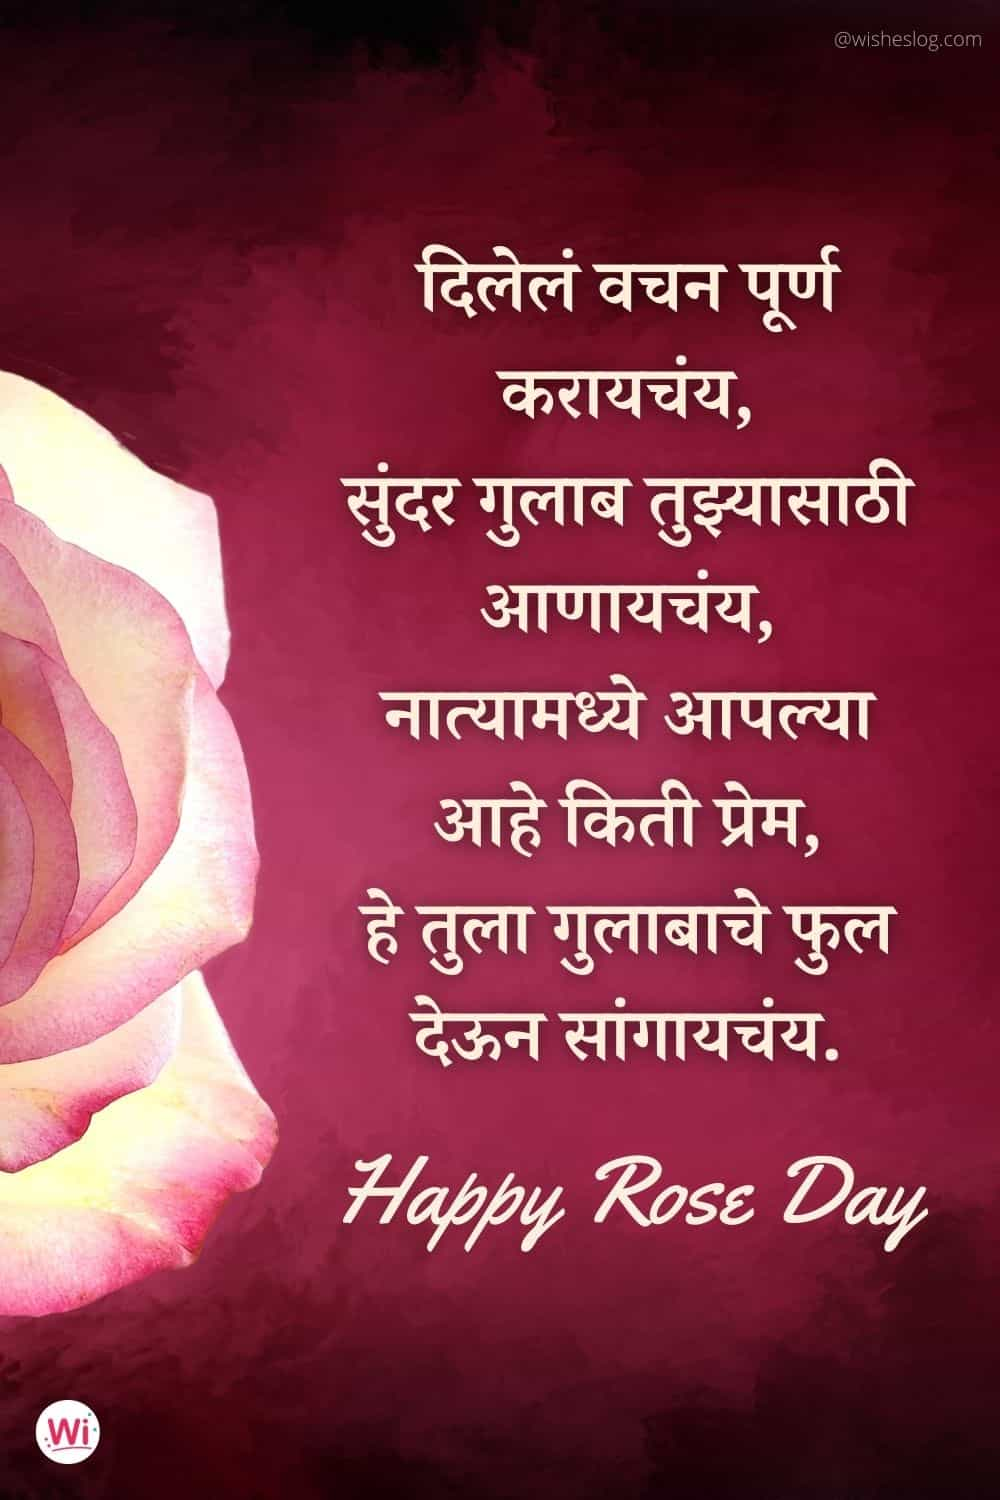 happy rose day ukhane